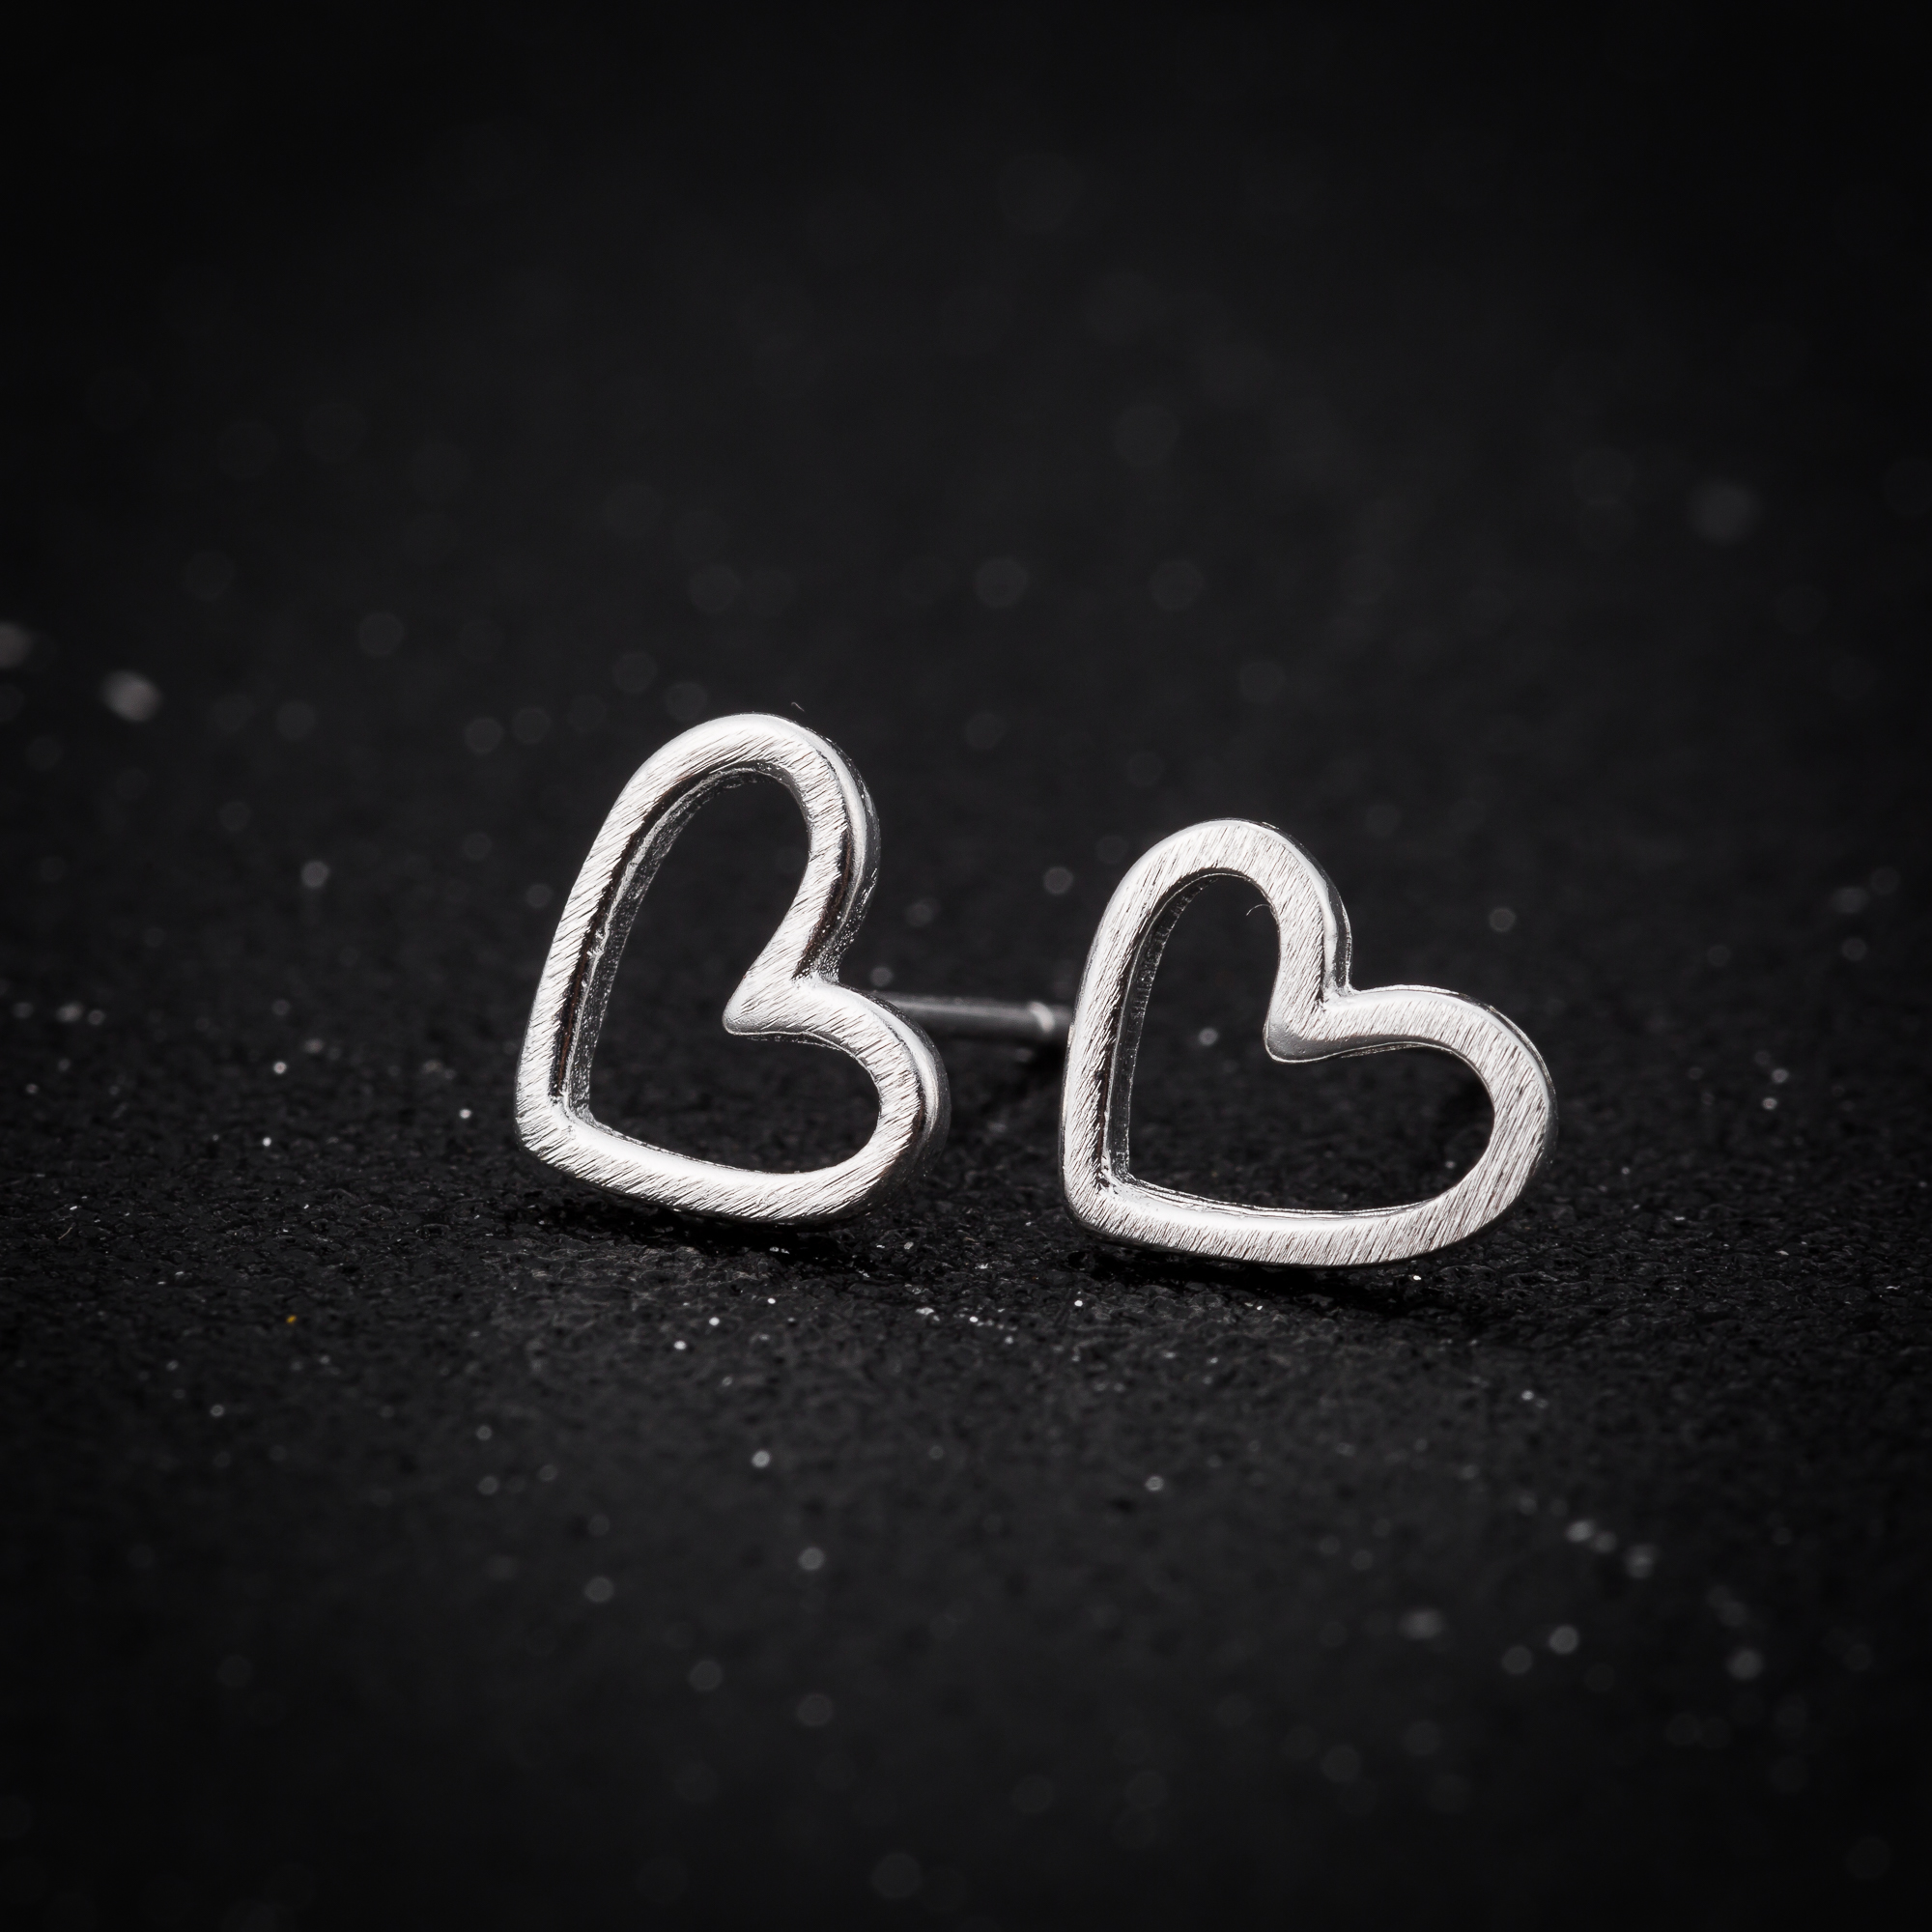 Fashion Simple Style Mini Hollow Heart Shaped 925 Sterling Silver Stud Earrings for Women Girls Fine Jewelry Valentine Gifts